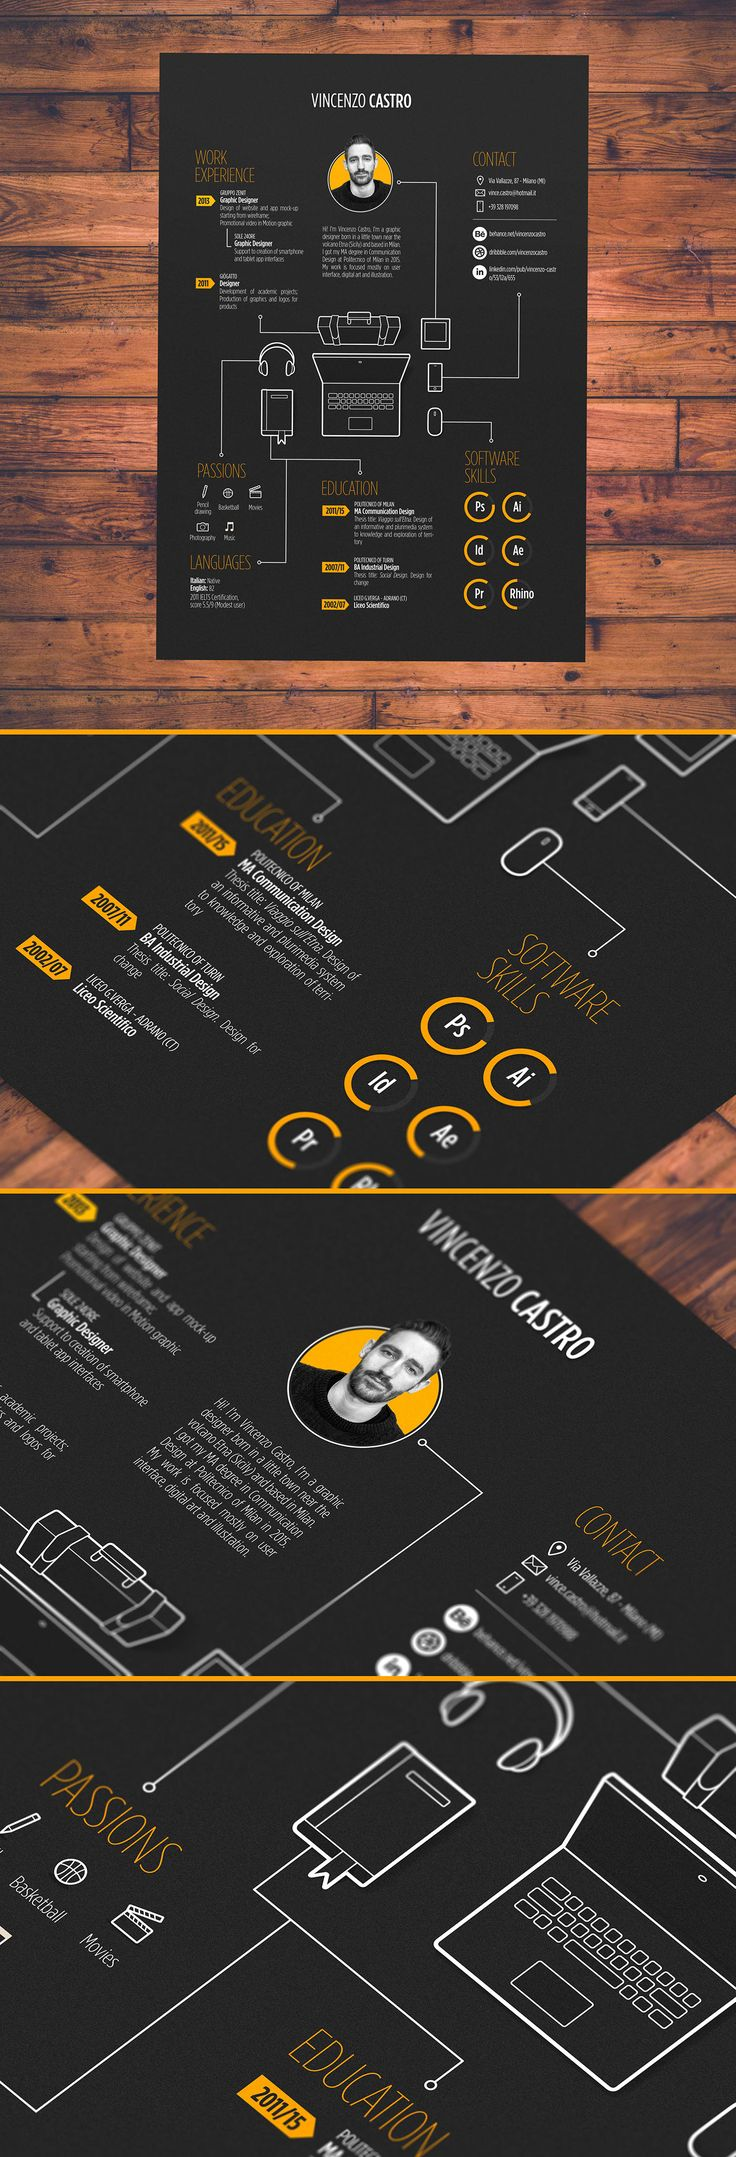 Vincenzo Castro , Graphic Designer , Self Promotion ; Like The Approach Of  A Art Designed CV And The Layout Feels Tidy And Collected.  Graphic Designers Resume